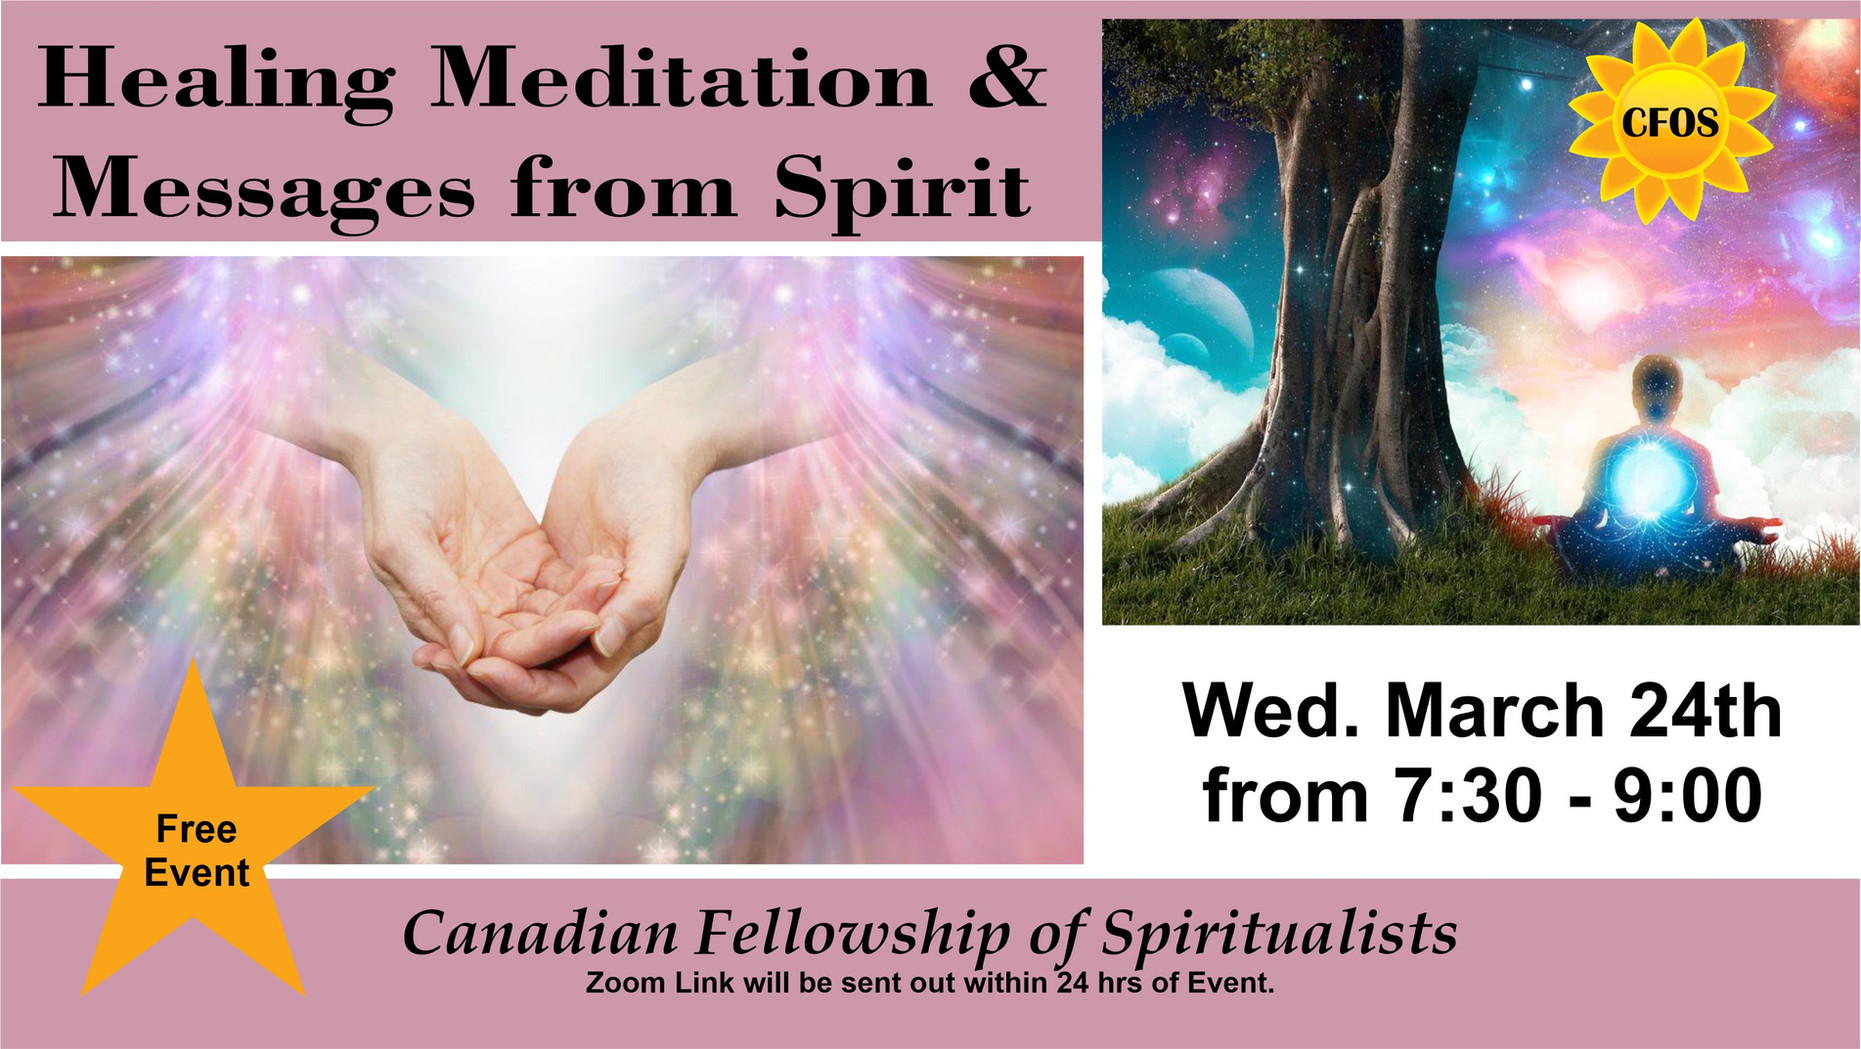 Guided Healing Meditation & Messages